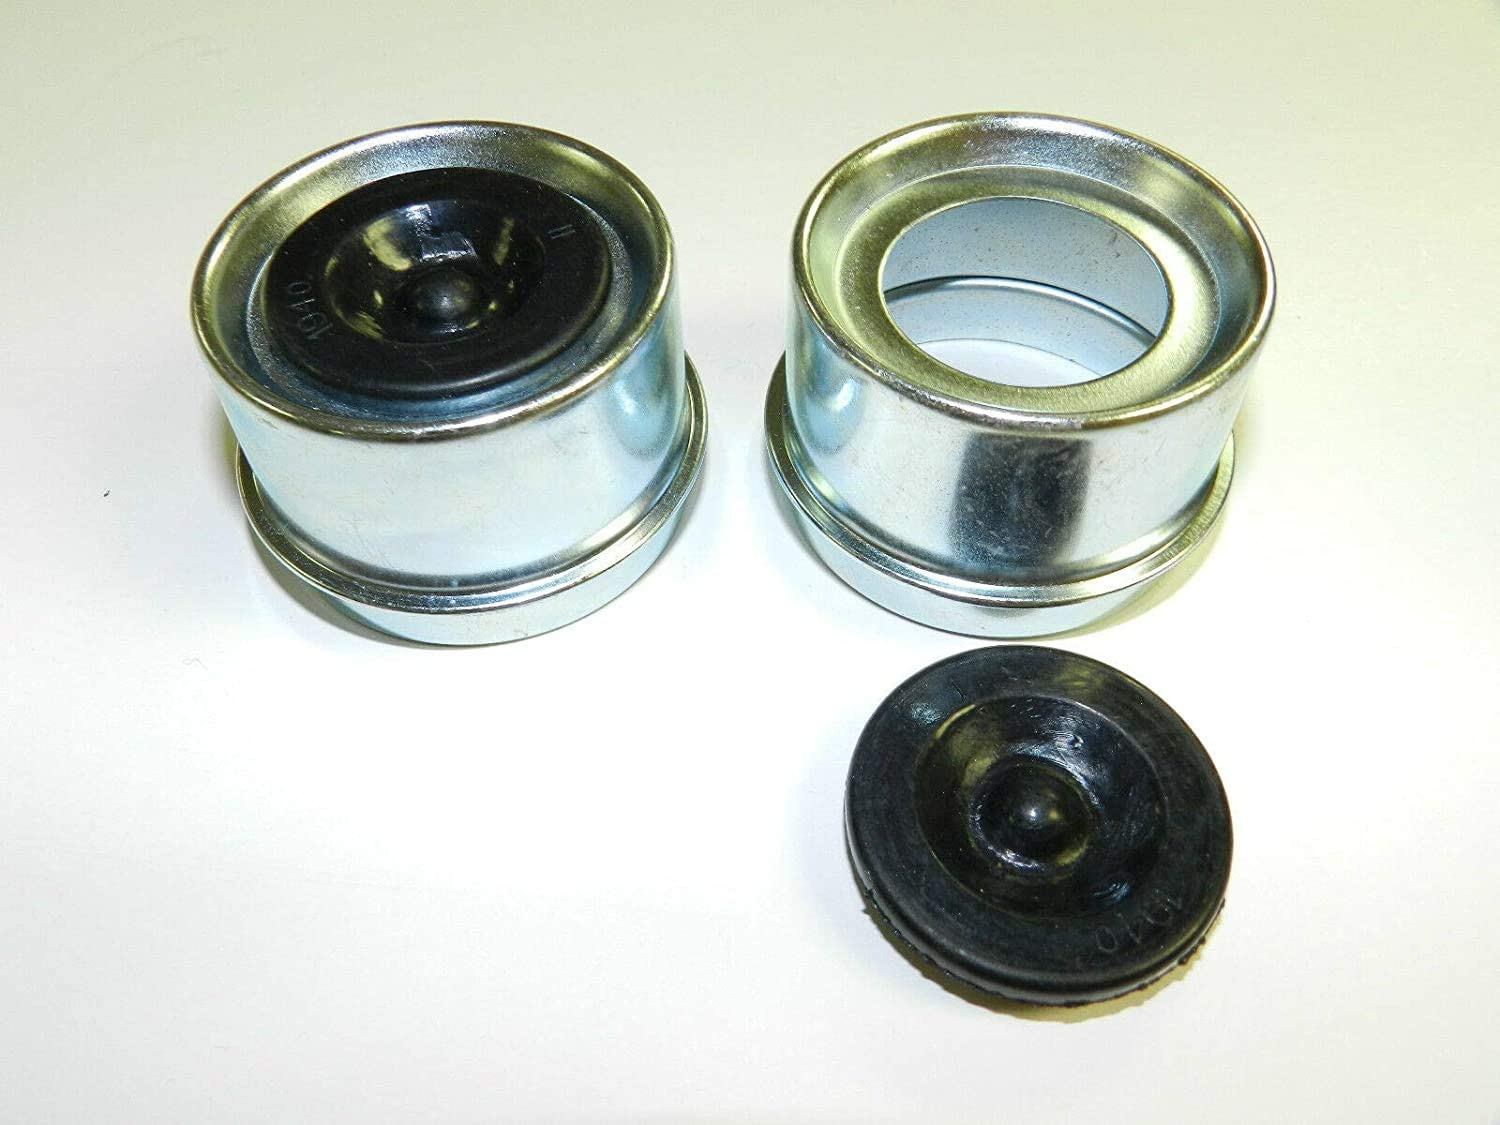 、 4 Pack ASMSD Replaces Trailer Axle Dust Cap Cup Grease Cover /& Plug RV Camper Utility 1.98